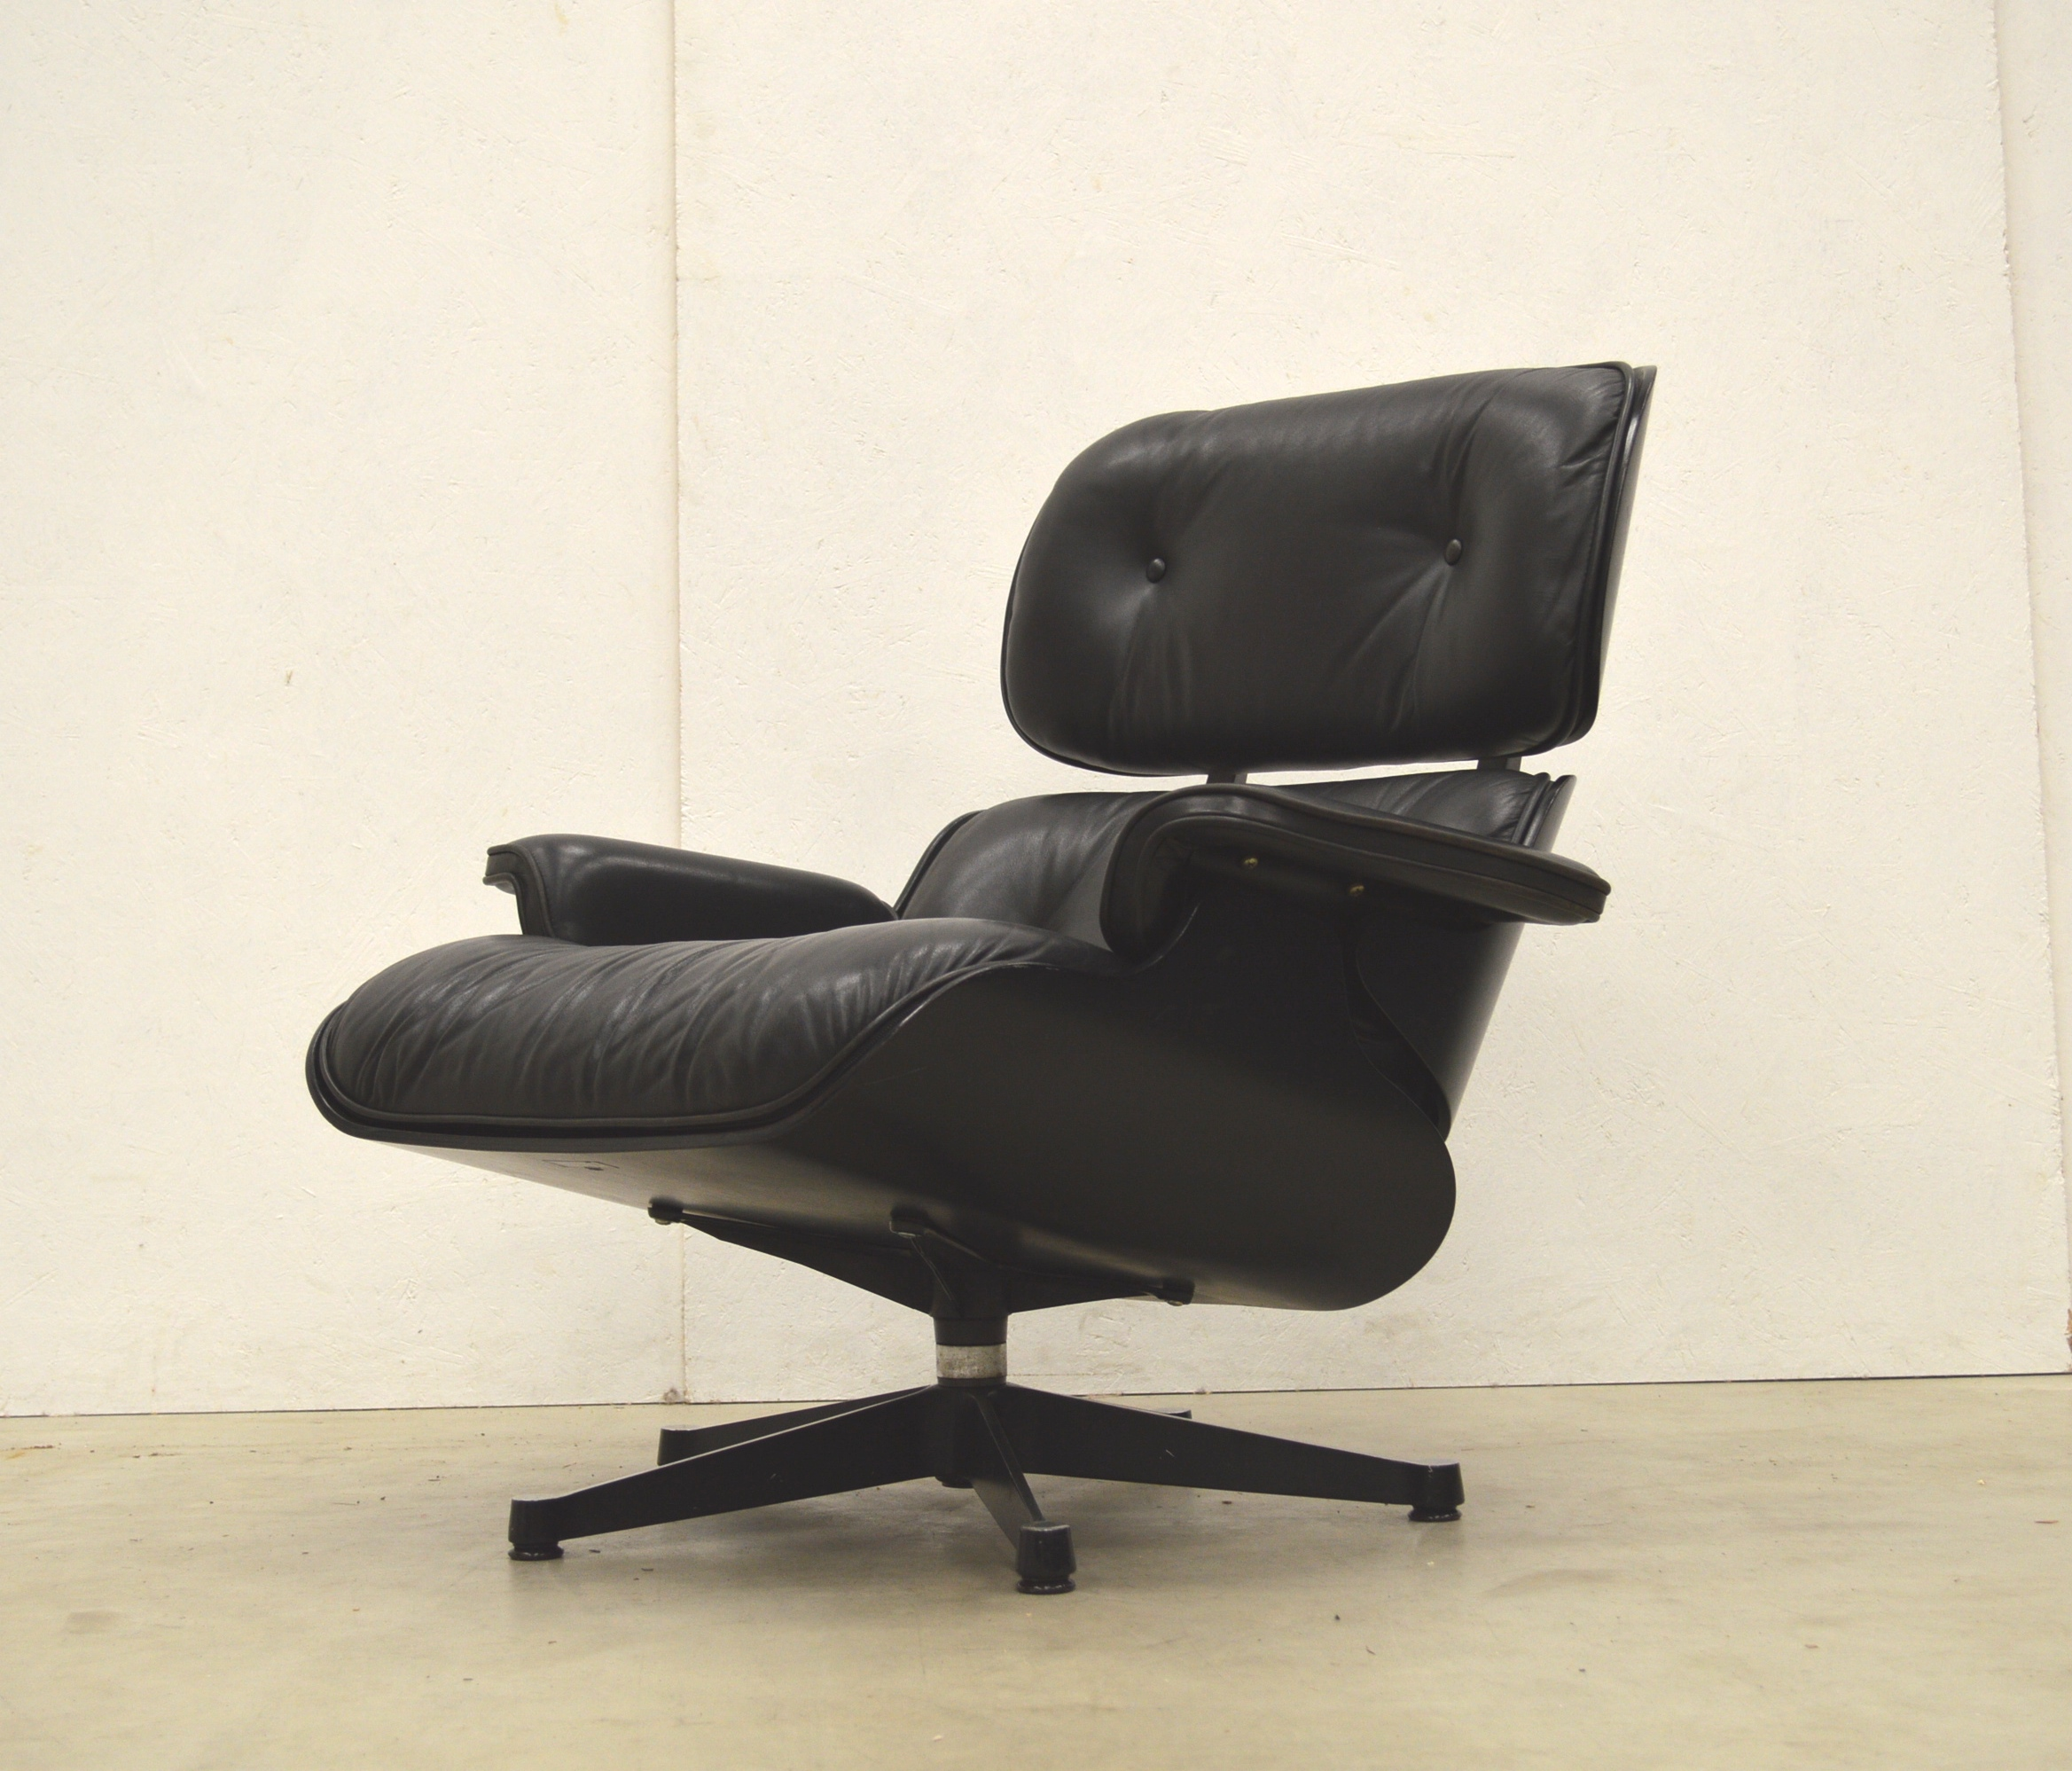 Eames Lounge Chair Zubehör Vitra Eames Lounge Chair Black Edition By Charles Eames Interior Aksel